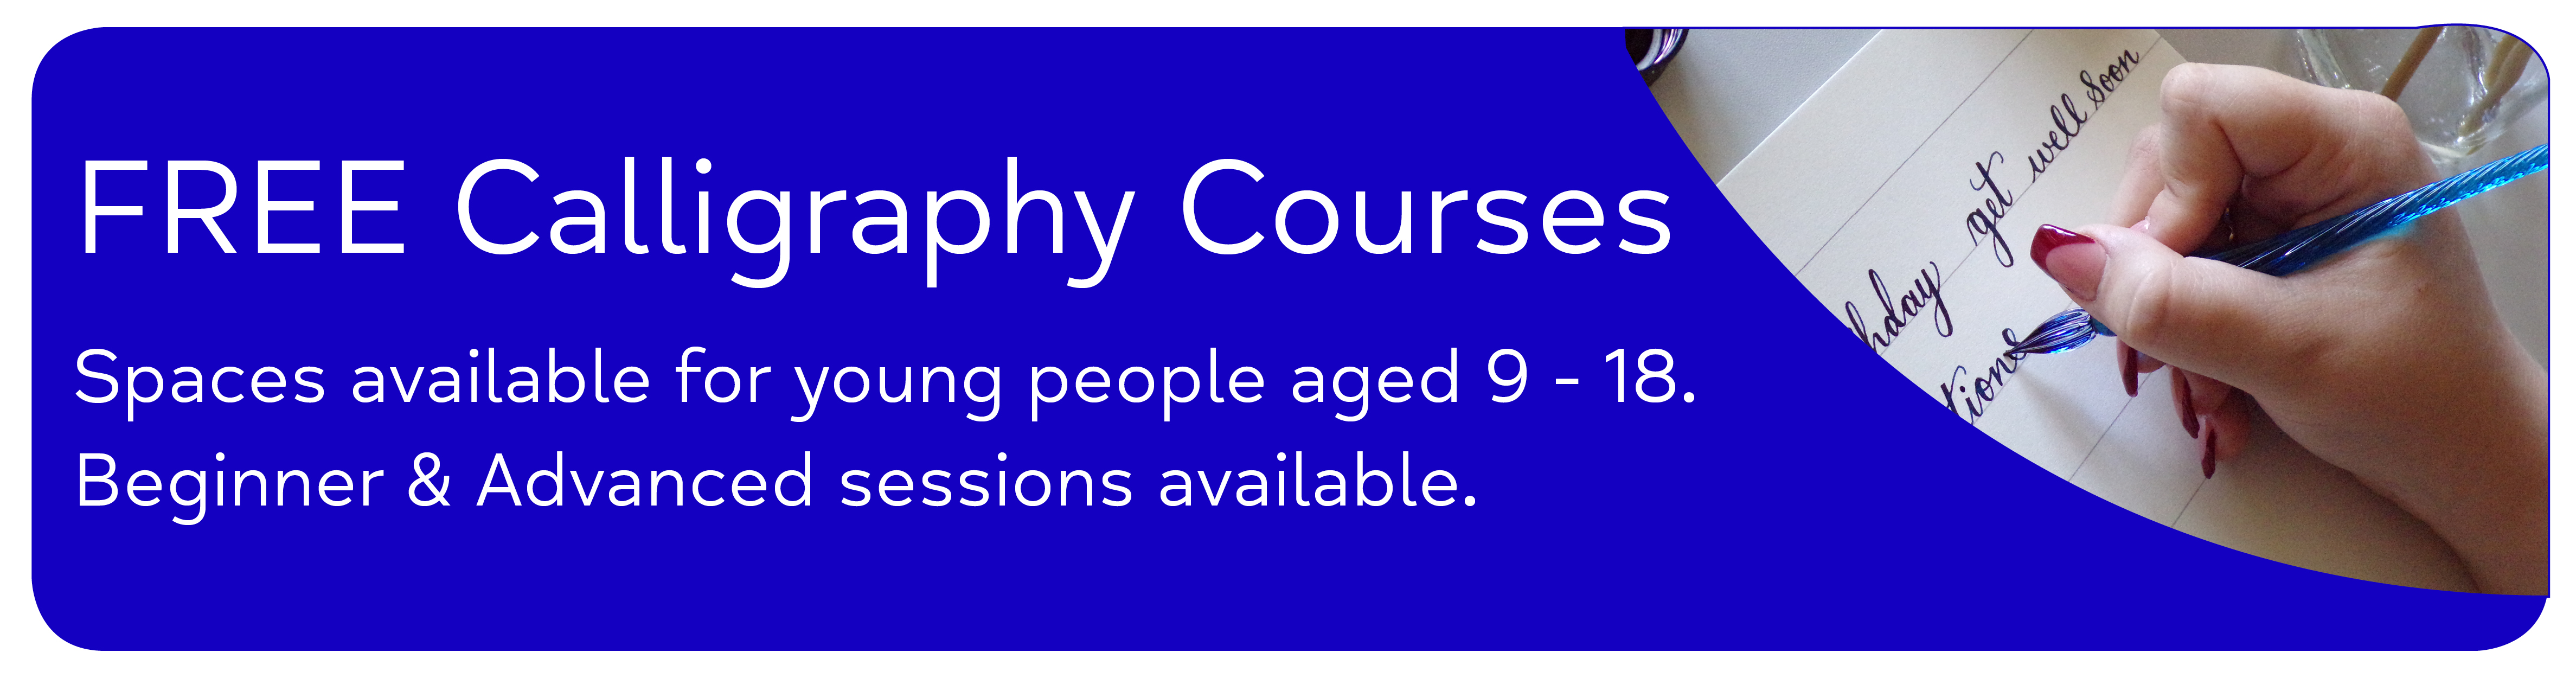 FREE Calligraphy Courses Spaces available for young people aged 9 - 18. Beginner & Advanced sessions available.